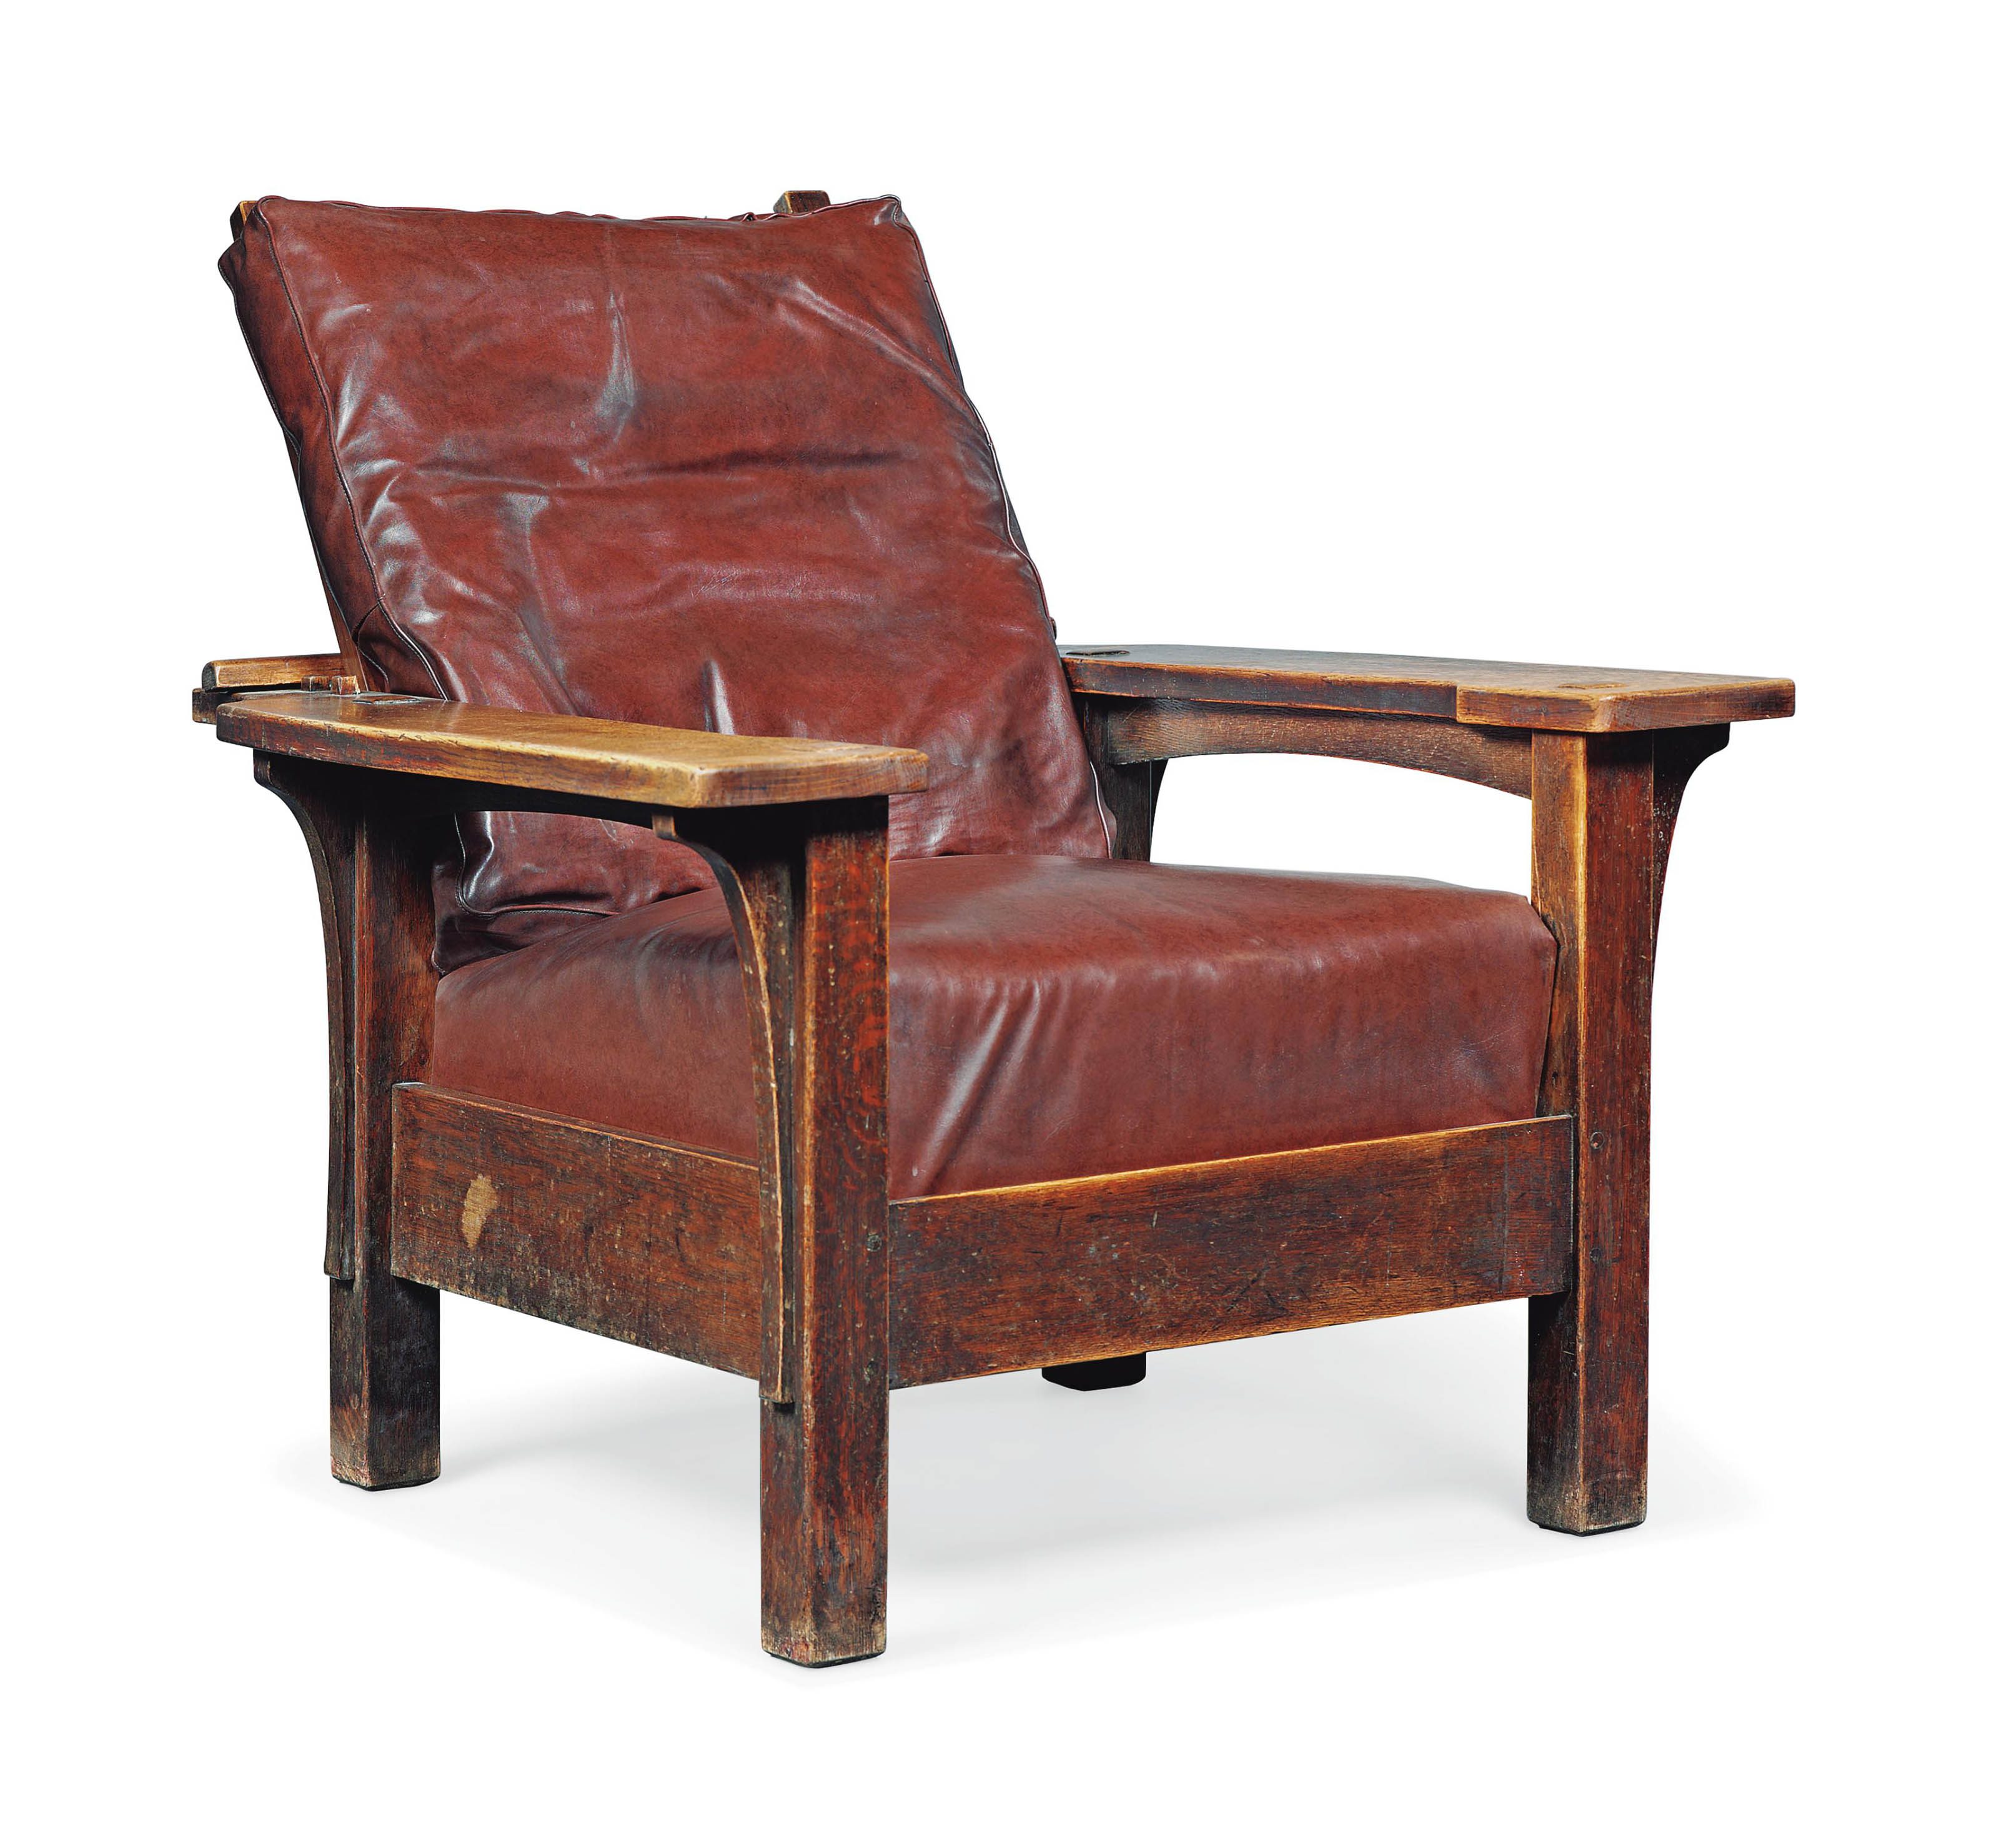 AN L. & J.G. STICKLEY STAINED OAK ADJUSTABLE ARMCHAIR, MODEL NO. 442